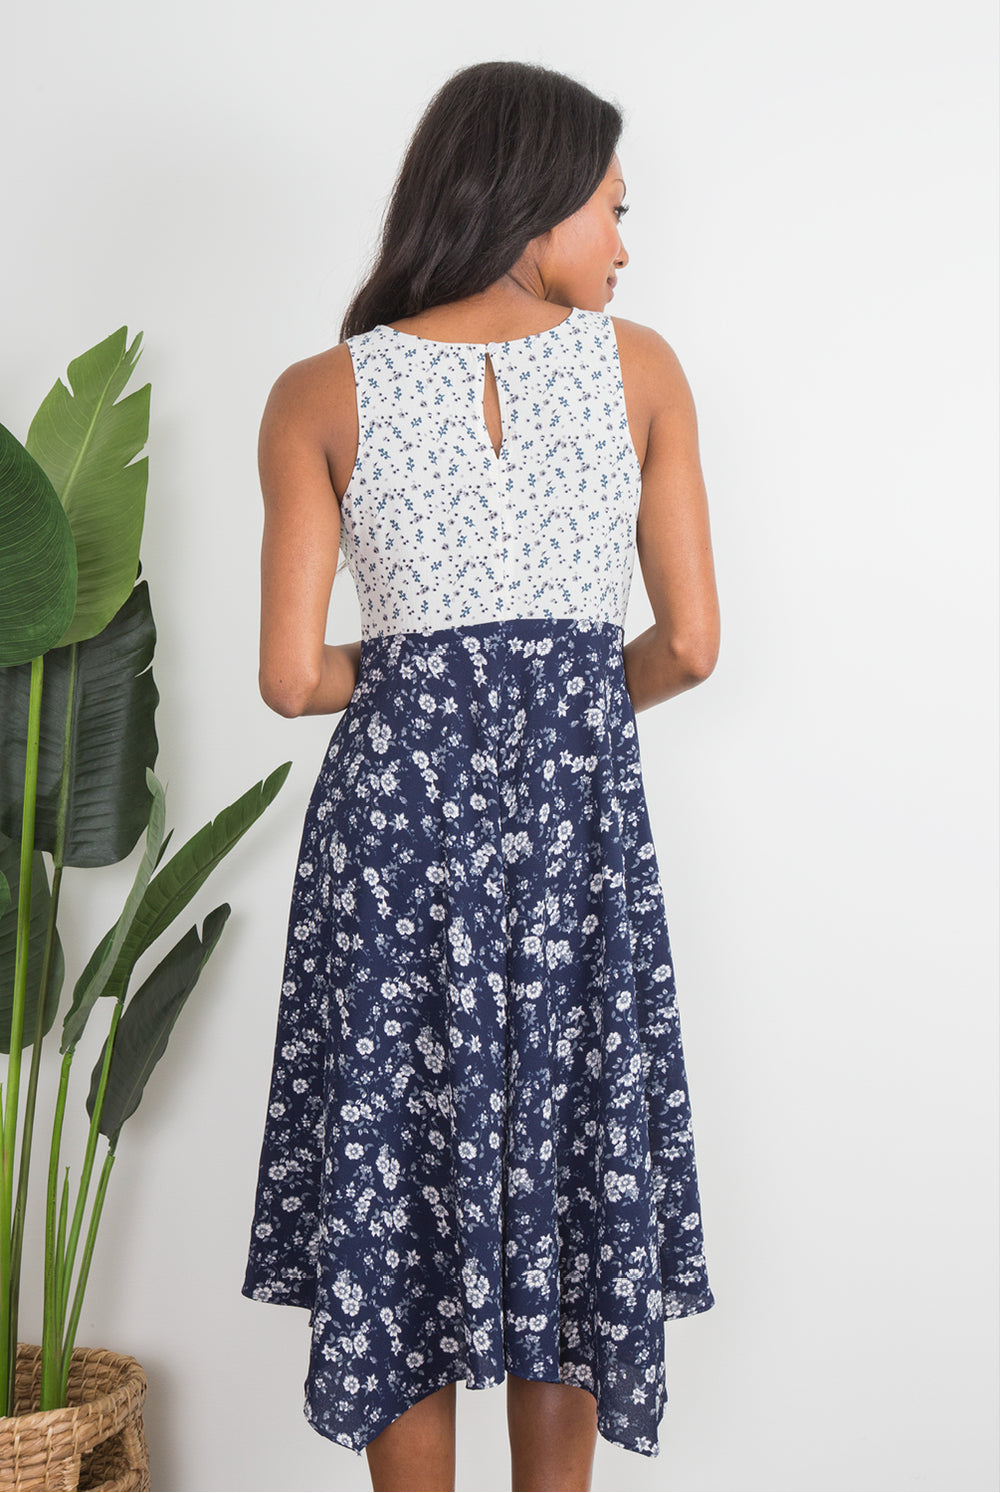 Woodstock Midi Dress